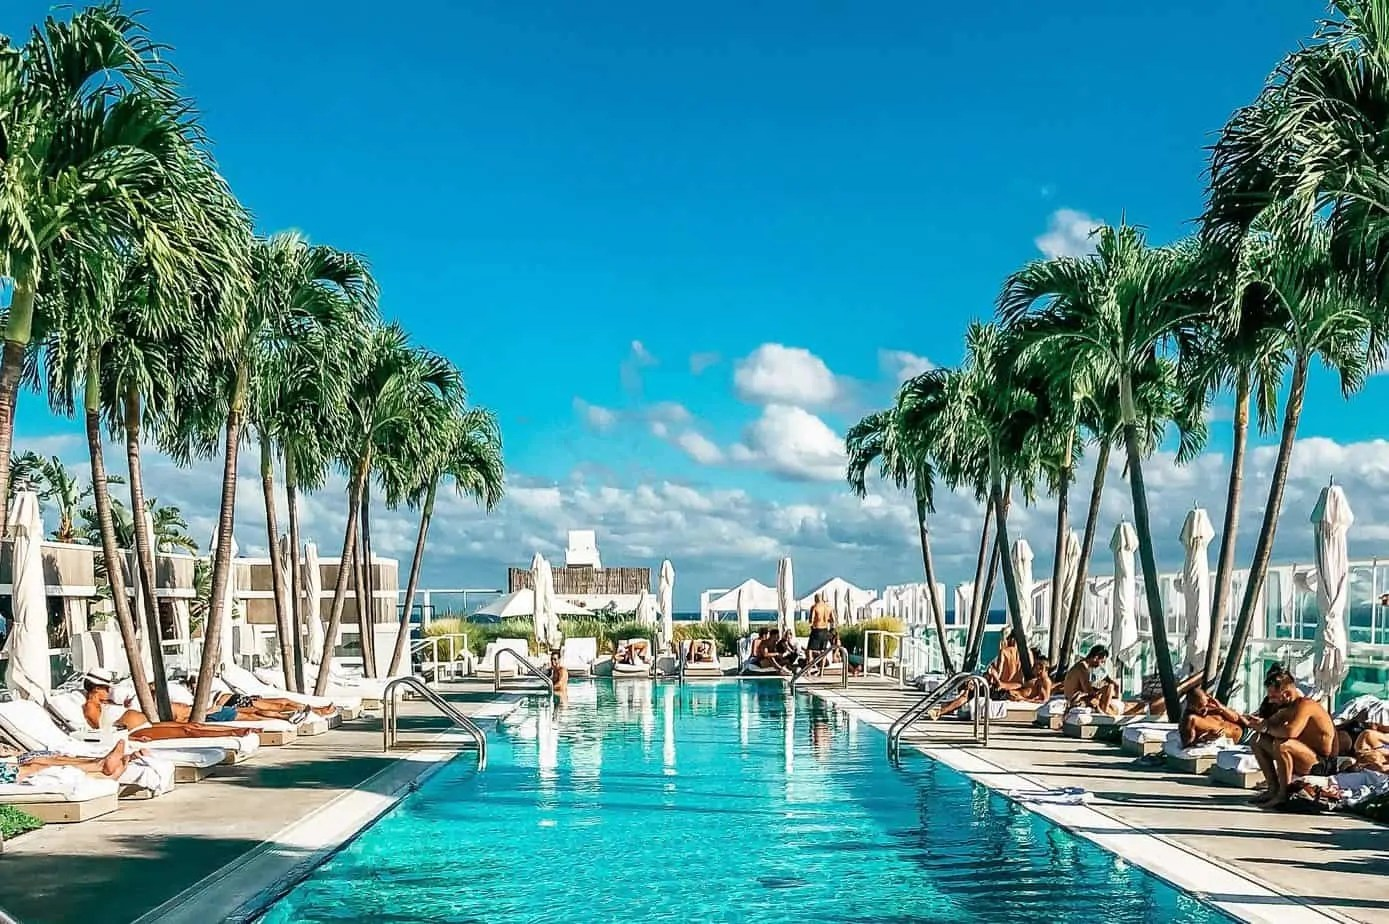 The Ultimate Miami Guide: Where to Stay, Eat, & Drink